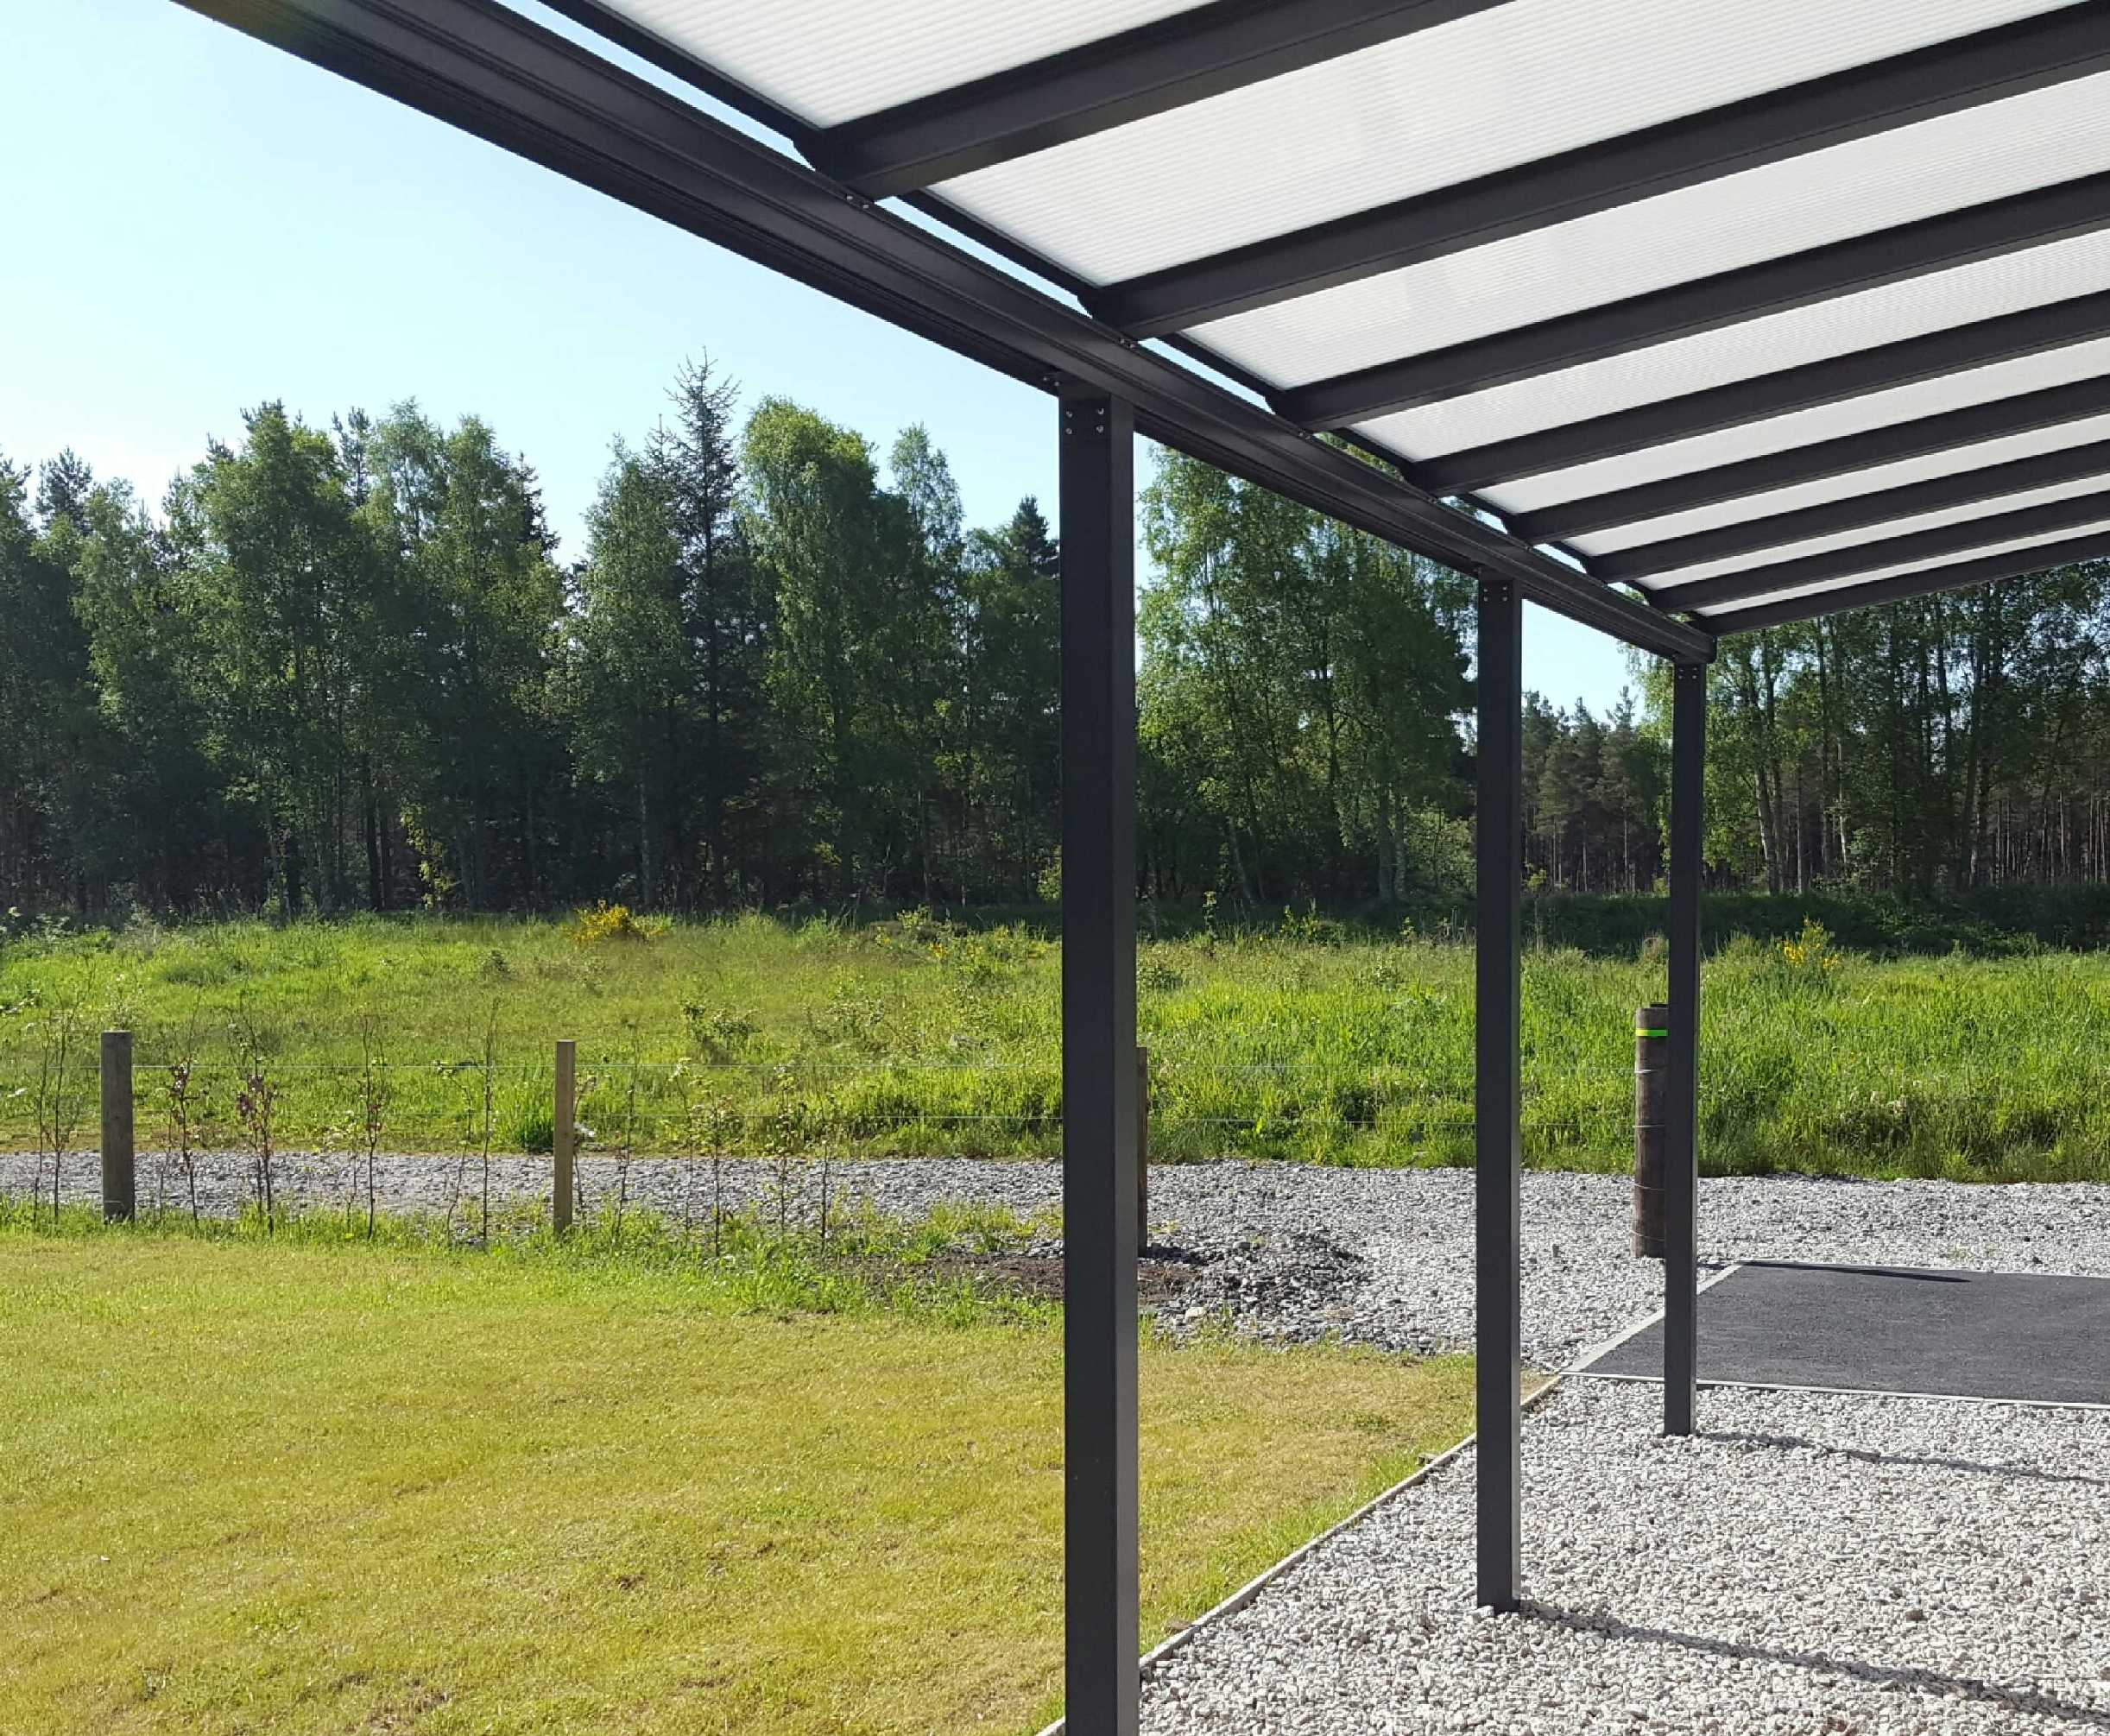 Omega Smart Lean-To Canopy, Anthracite Grey, 16mm Polycarbonate Glazing - 12.0m (W) x 3.5m (P), (5) Supporting Posts